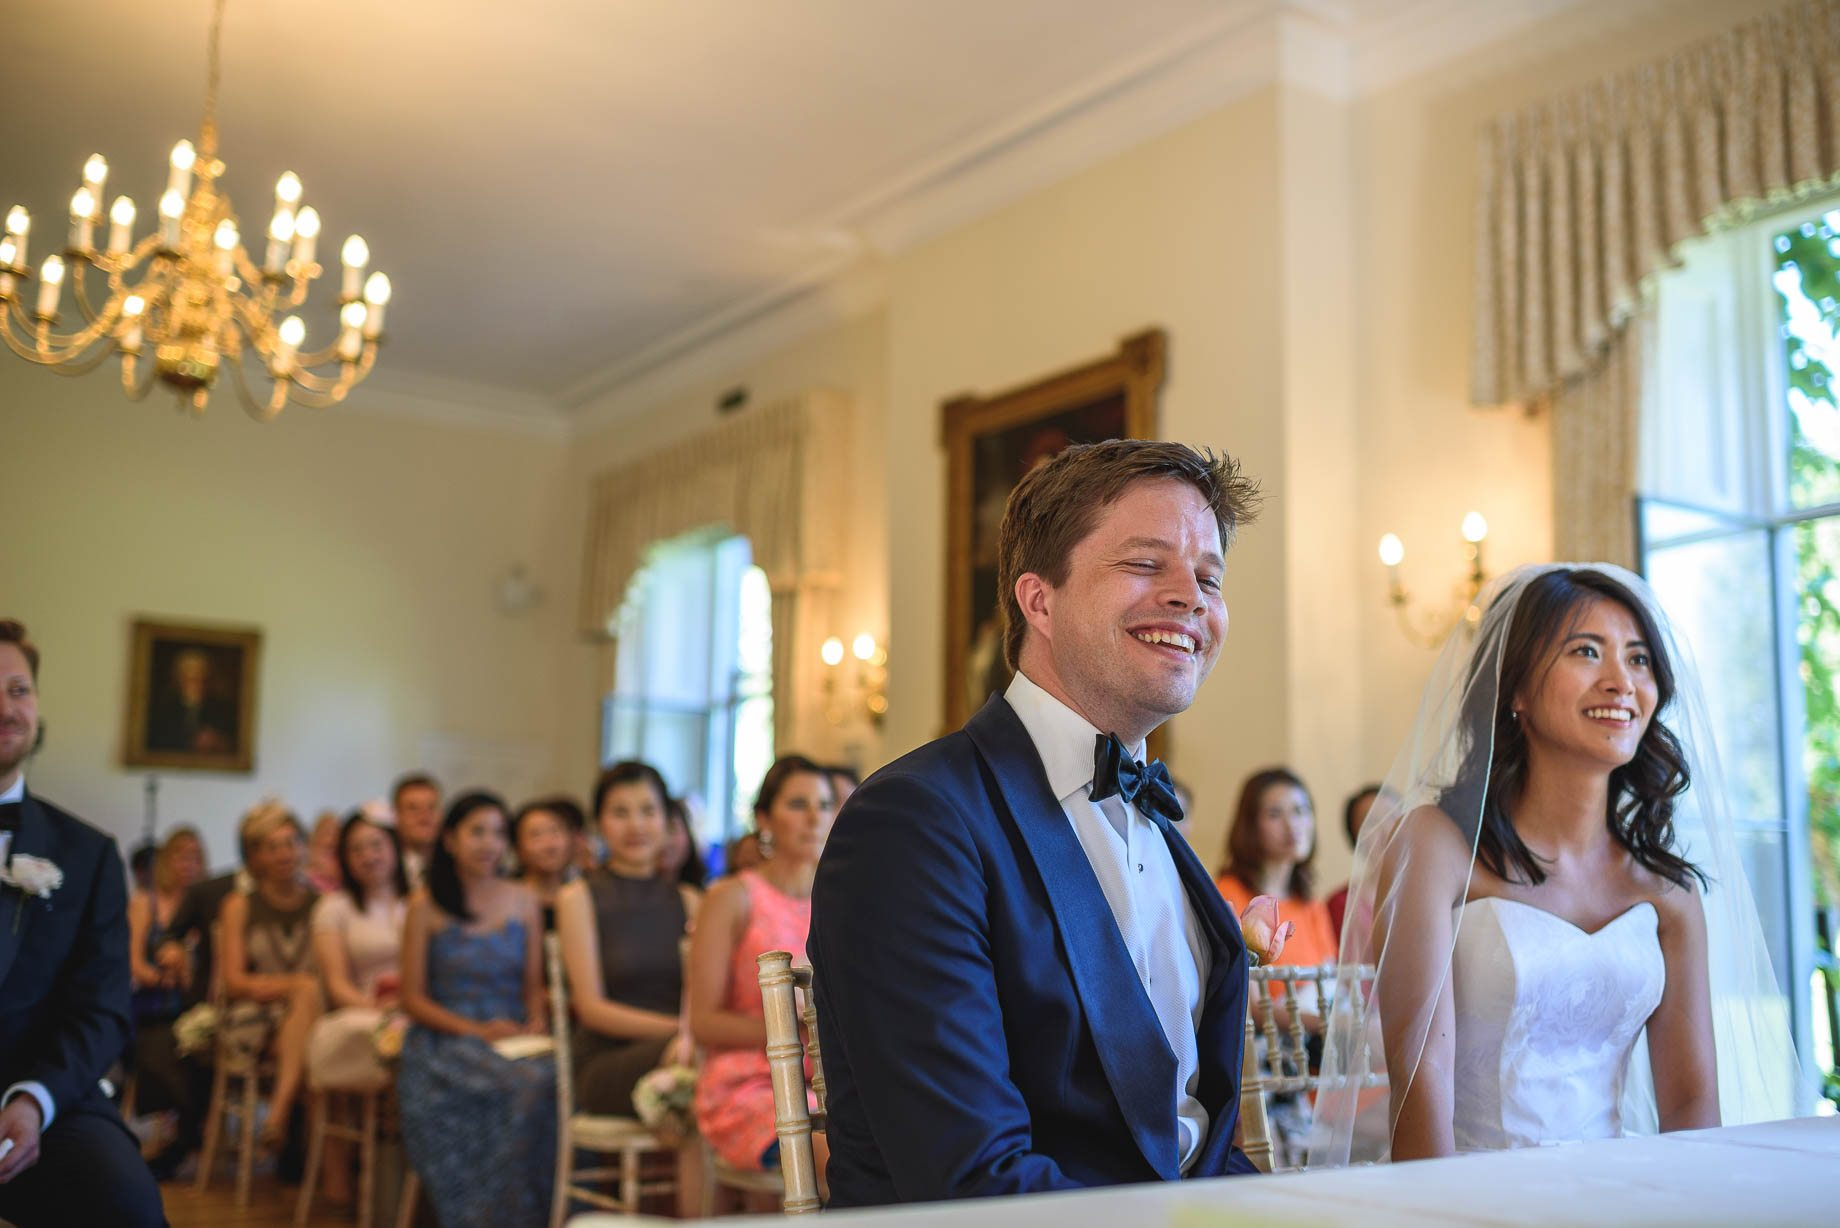 Kew Gardens wedding photography - Guy Collier Photography - Gloria and Frederik (43 of 173)